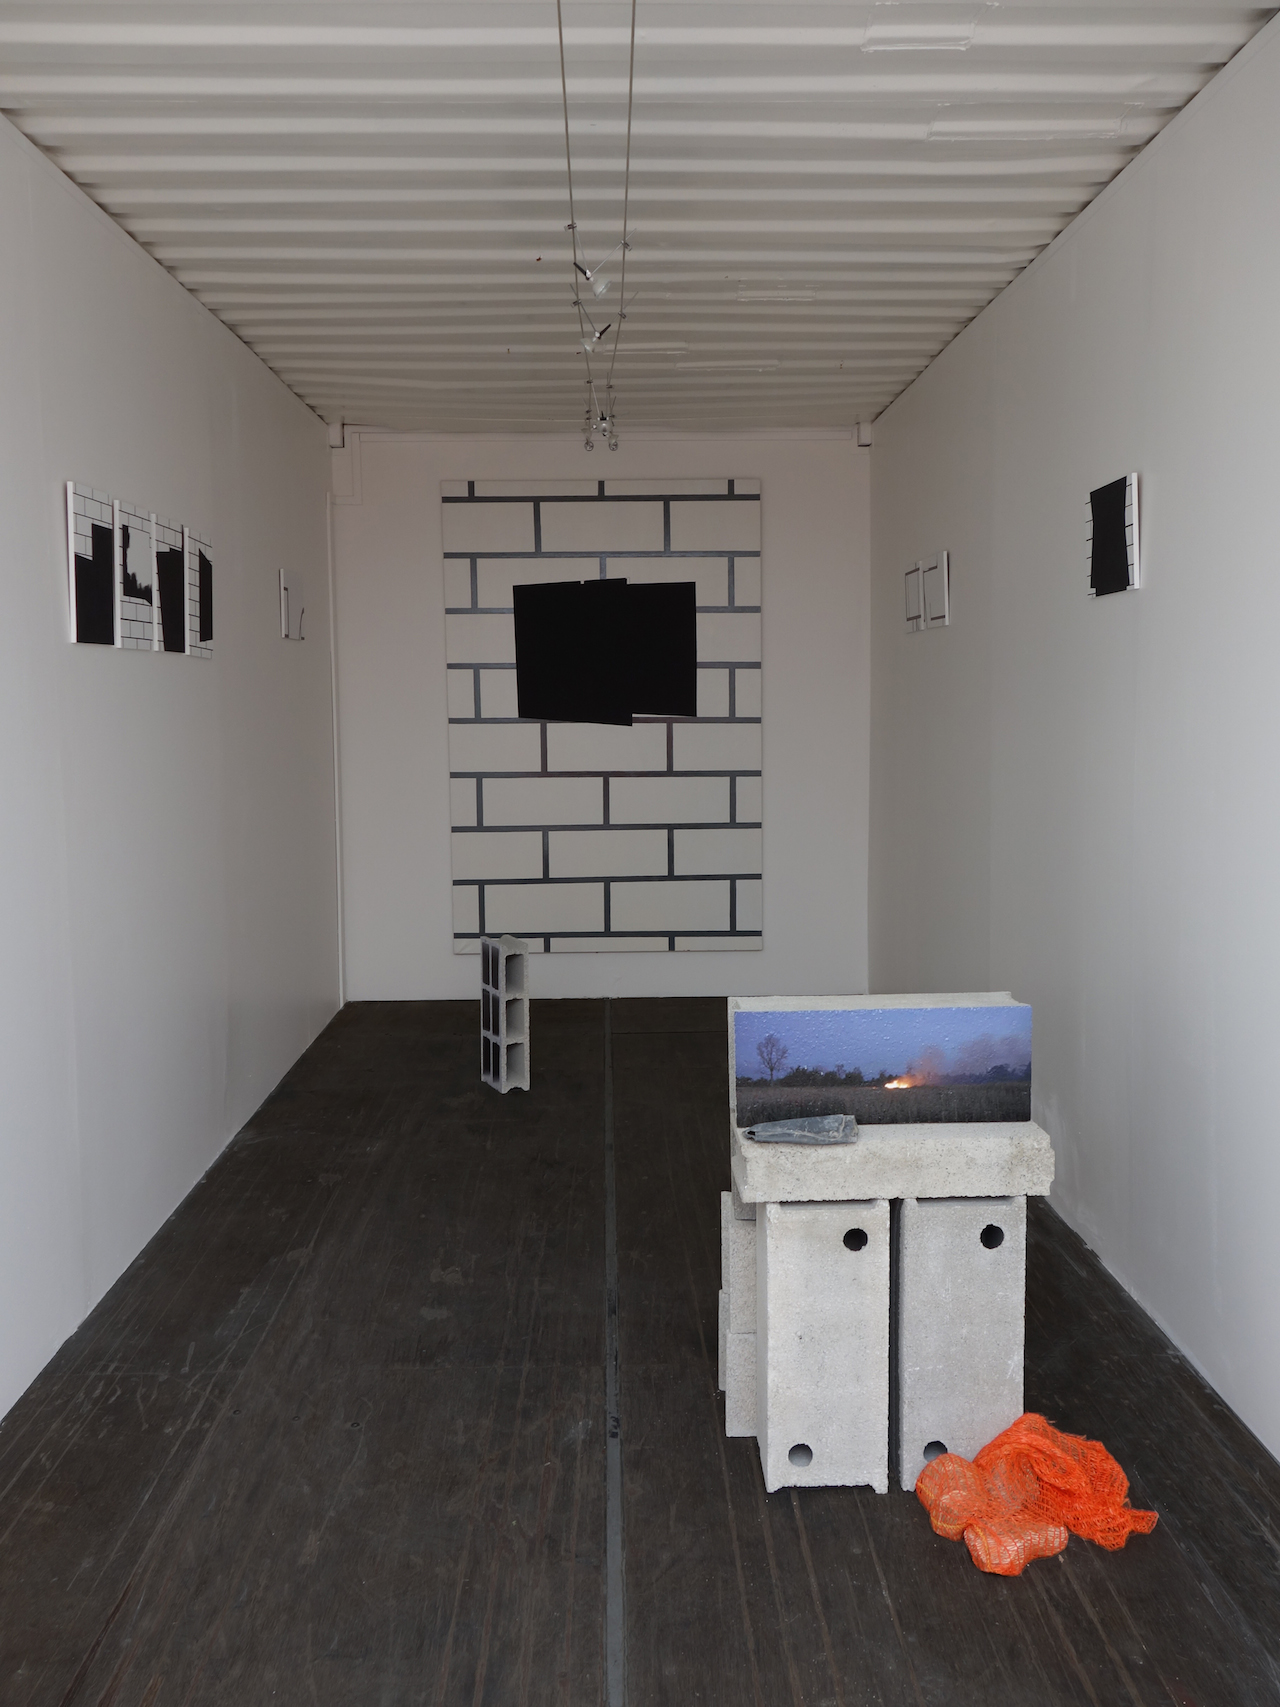 Alain Brunet, container2, 2014, exposition Centre Richebois, Marseille, DR. A. Brunet.